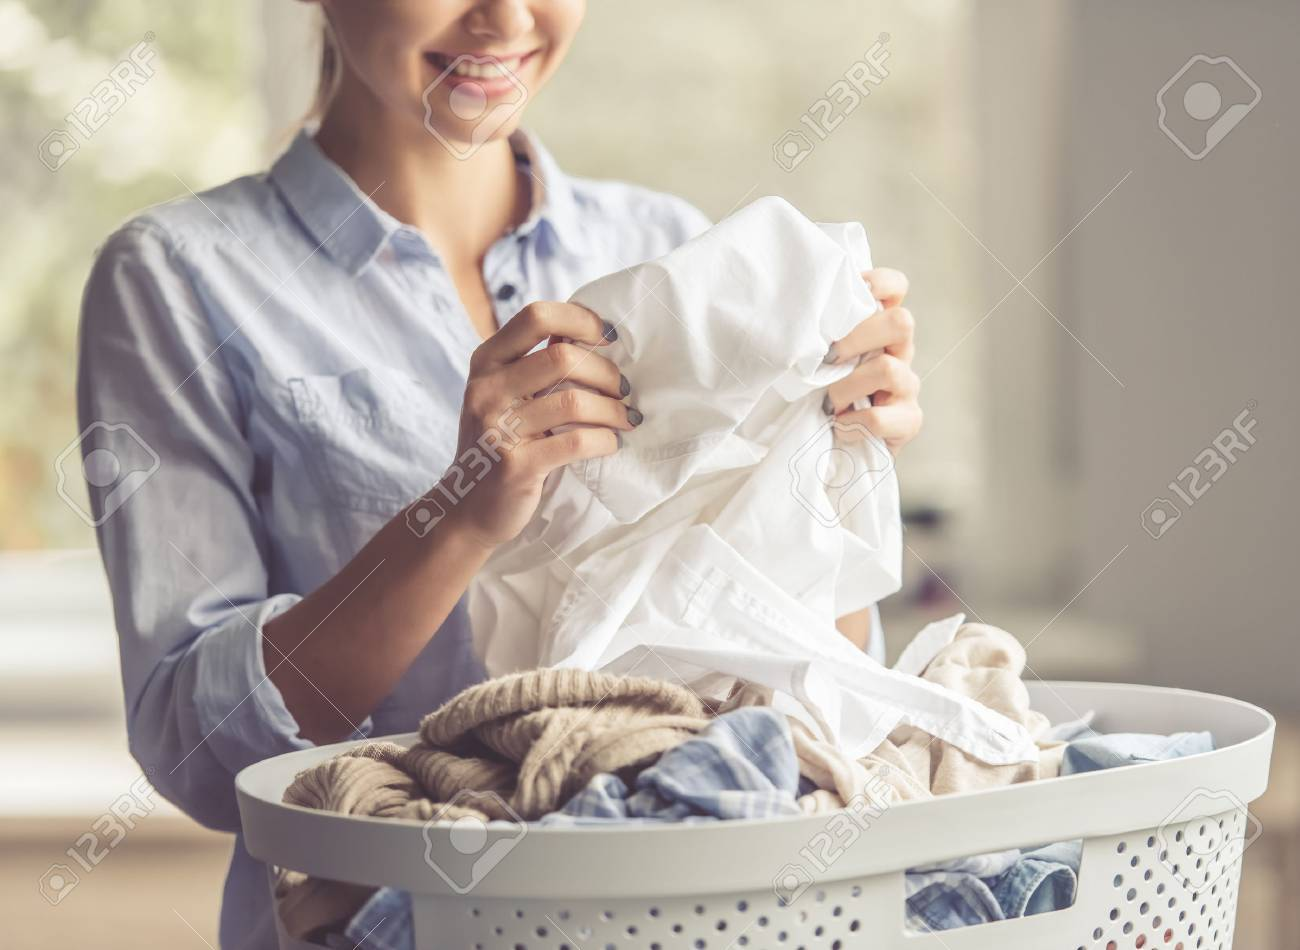 Cropped image of beautiful young woman is smiling while doing laundry at home Standard-Bild - 65422817